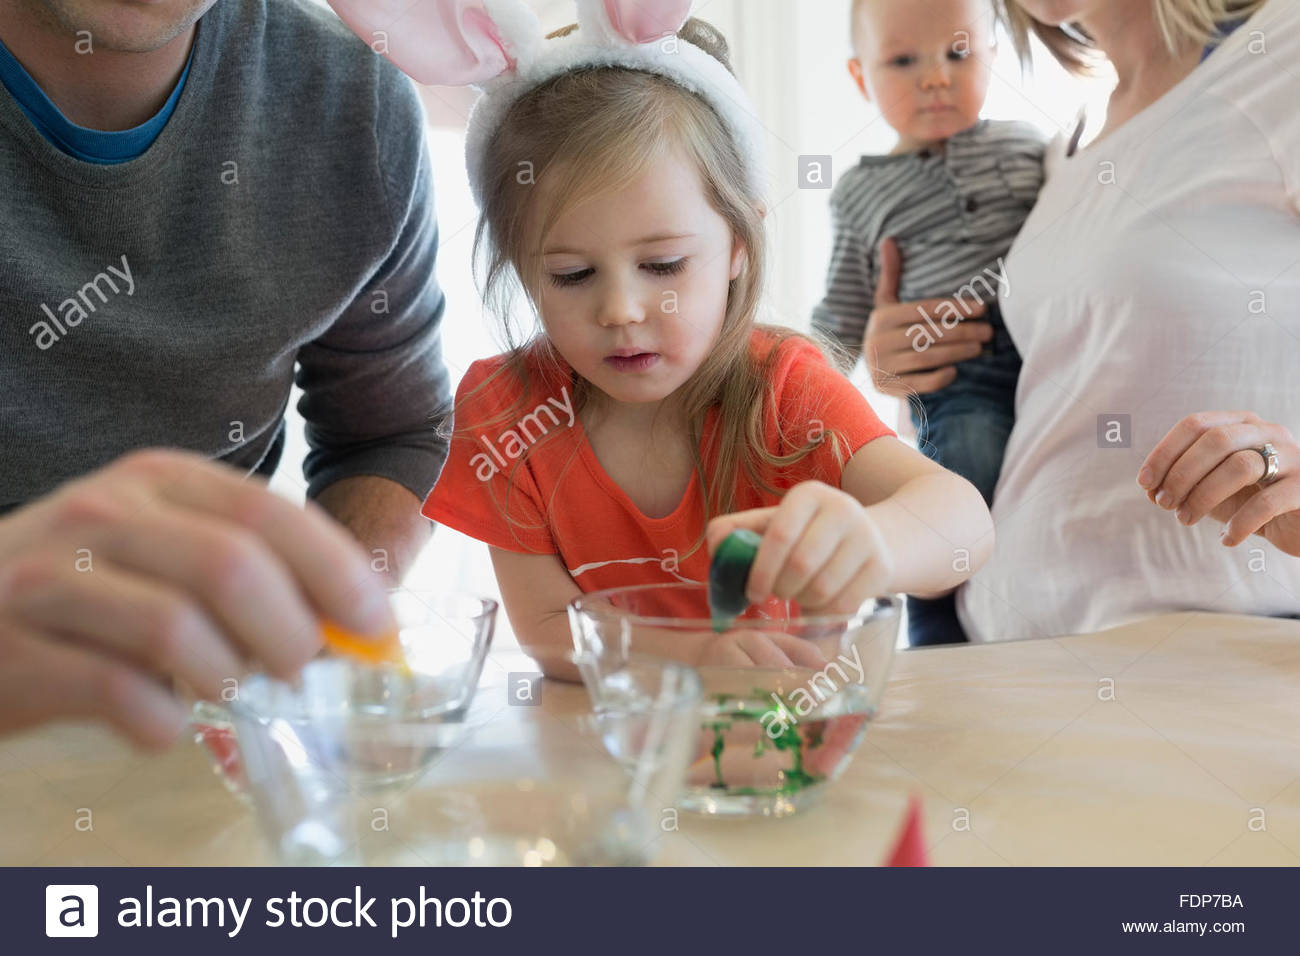 Family preparing food coloring for Easter eggs - Stock Image